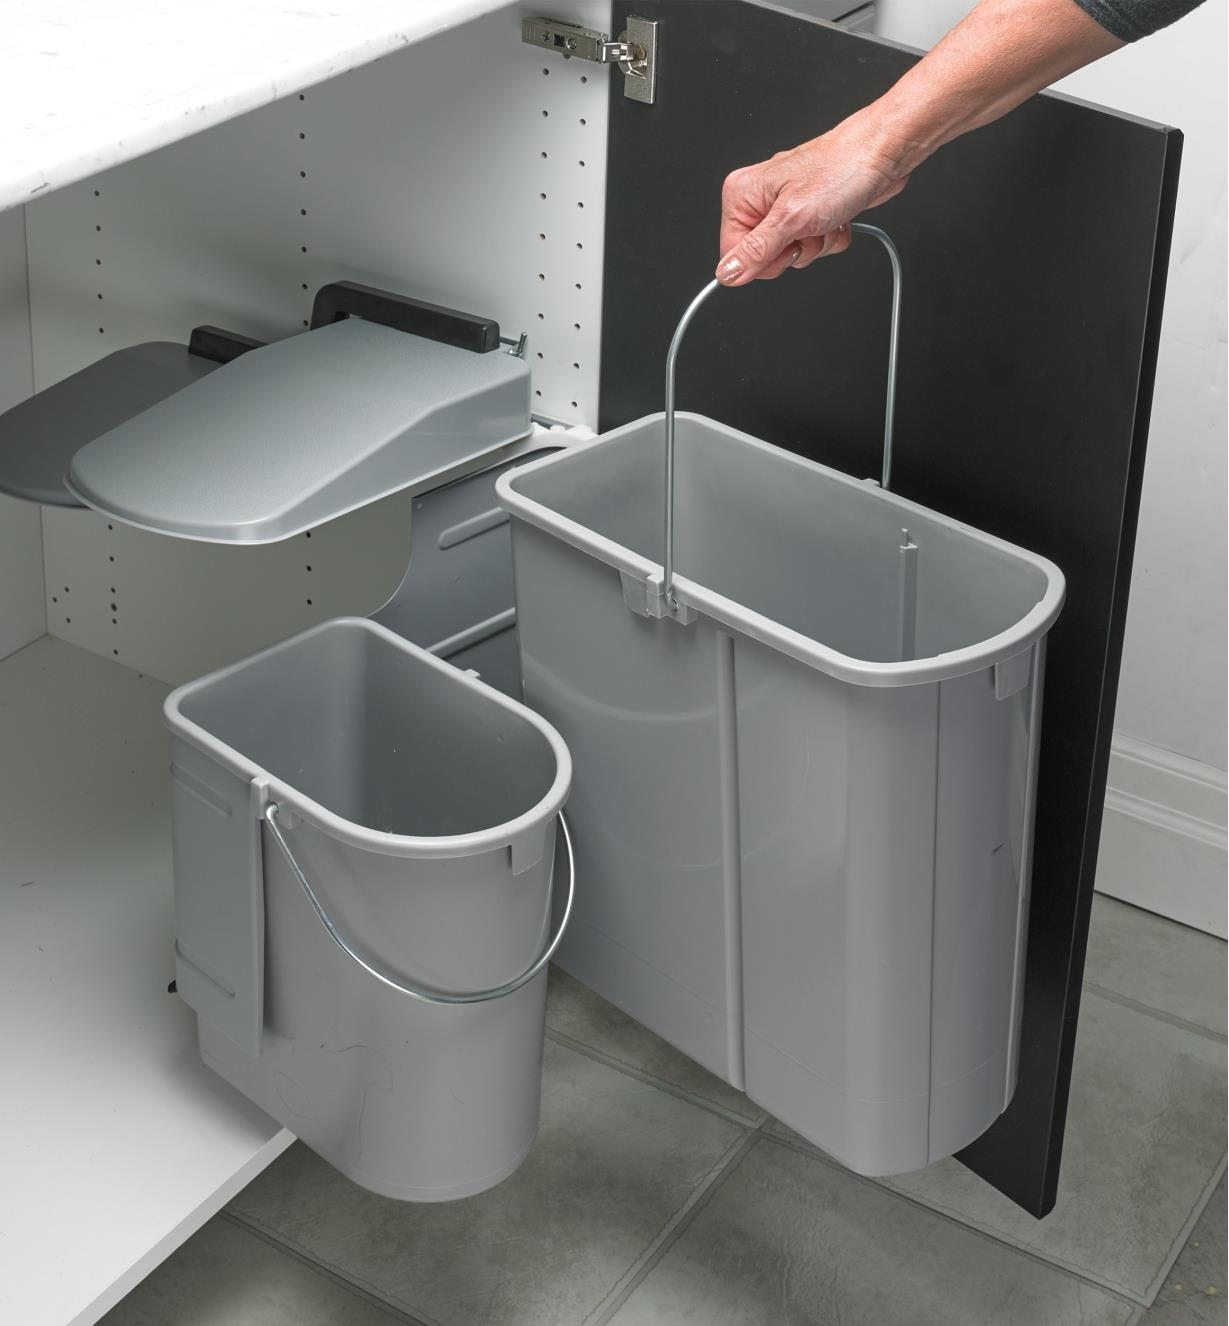 Lifting one of the waste bins by the handle